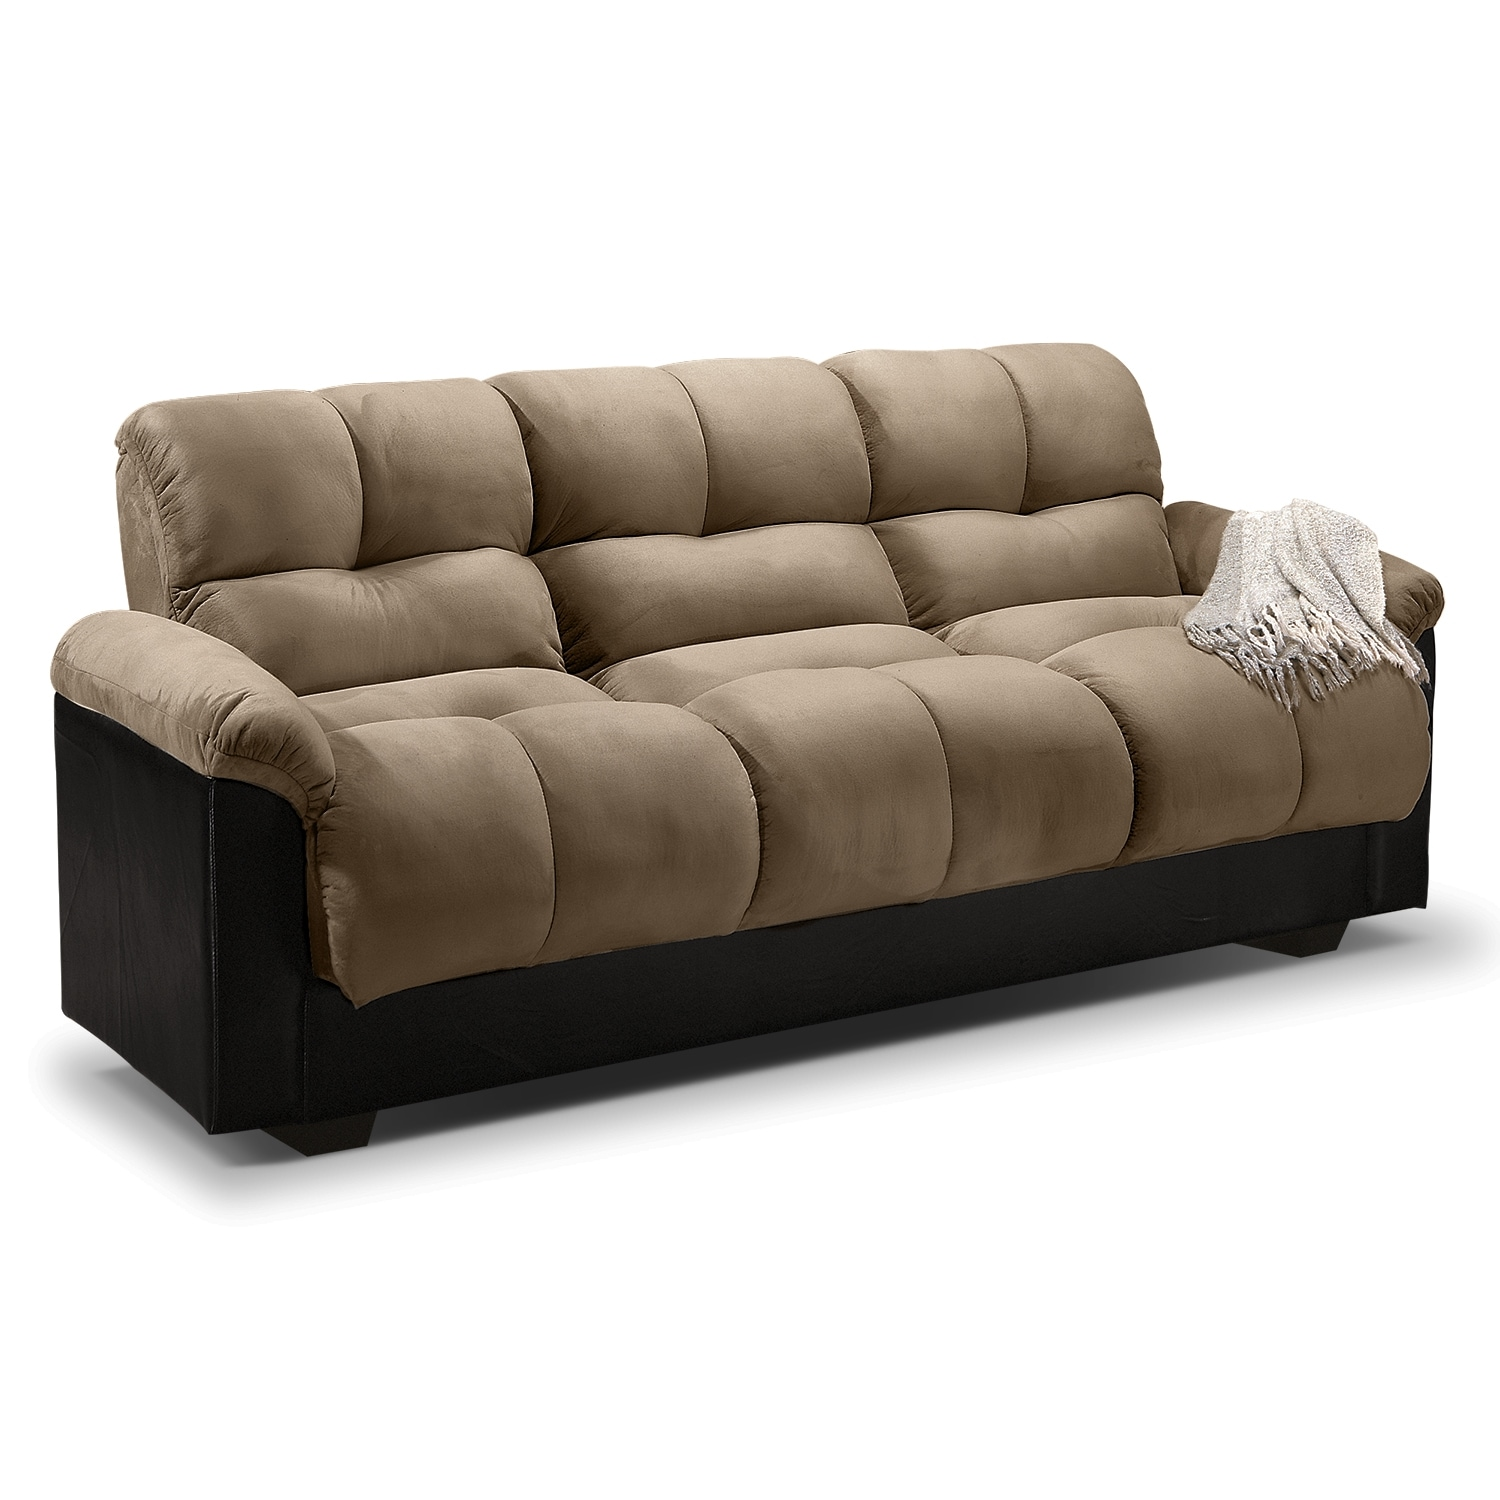 Ara futon sofa bed with storage value city furniture Couch and bed